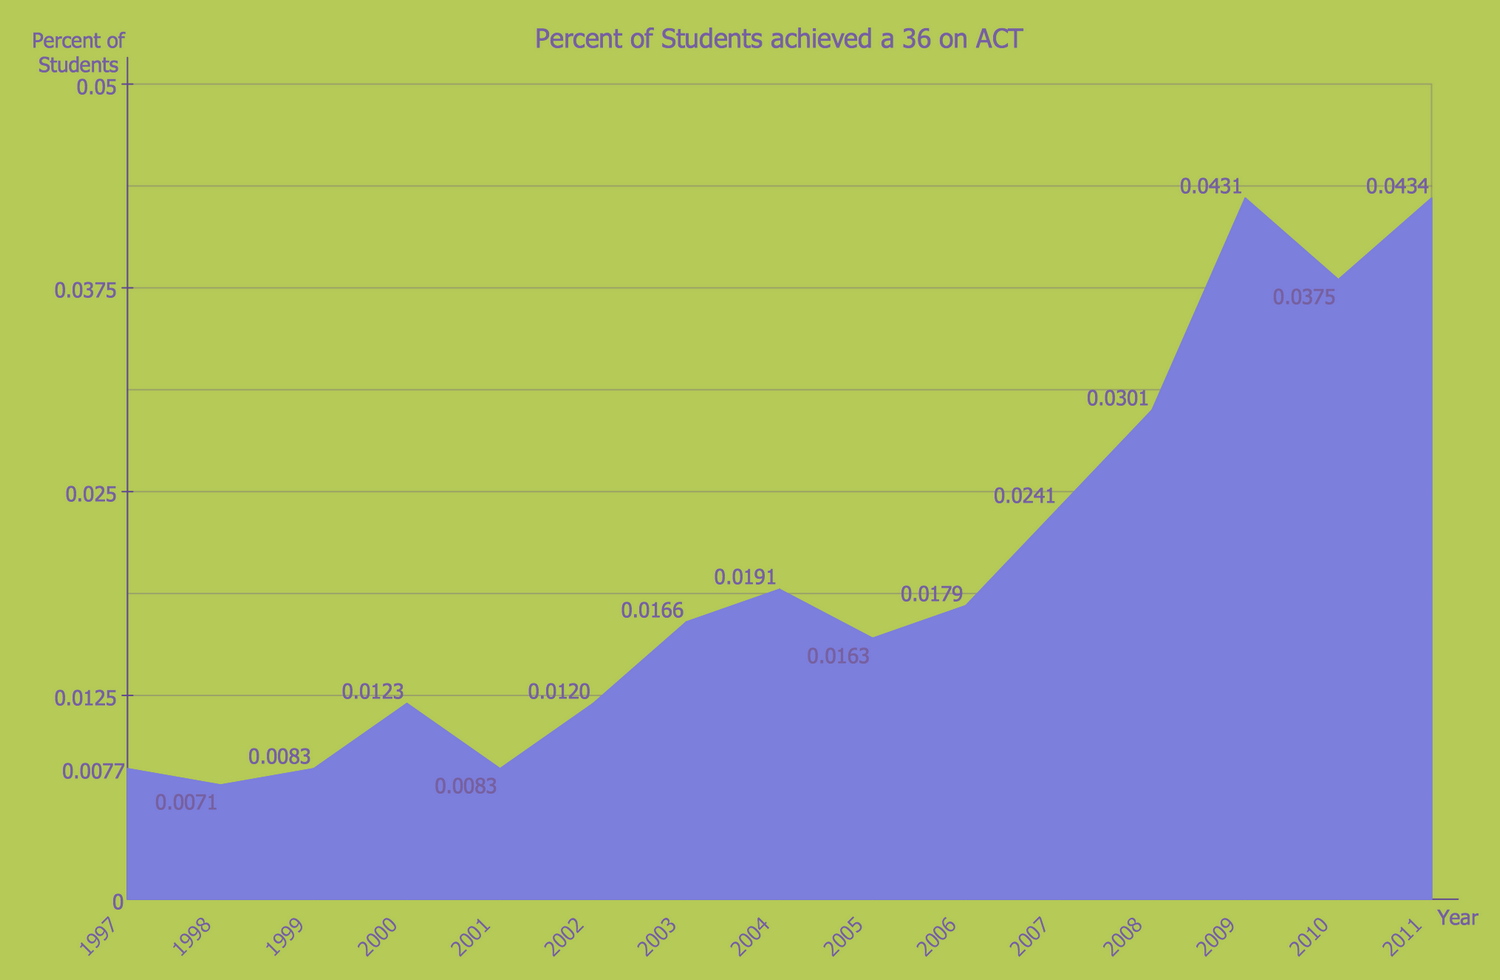 Percent of Students Achieved a 36 on ACT